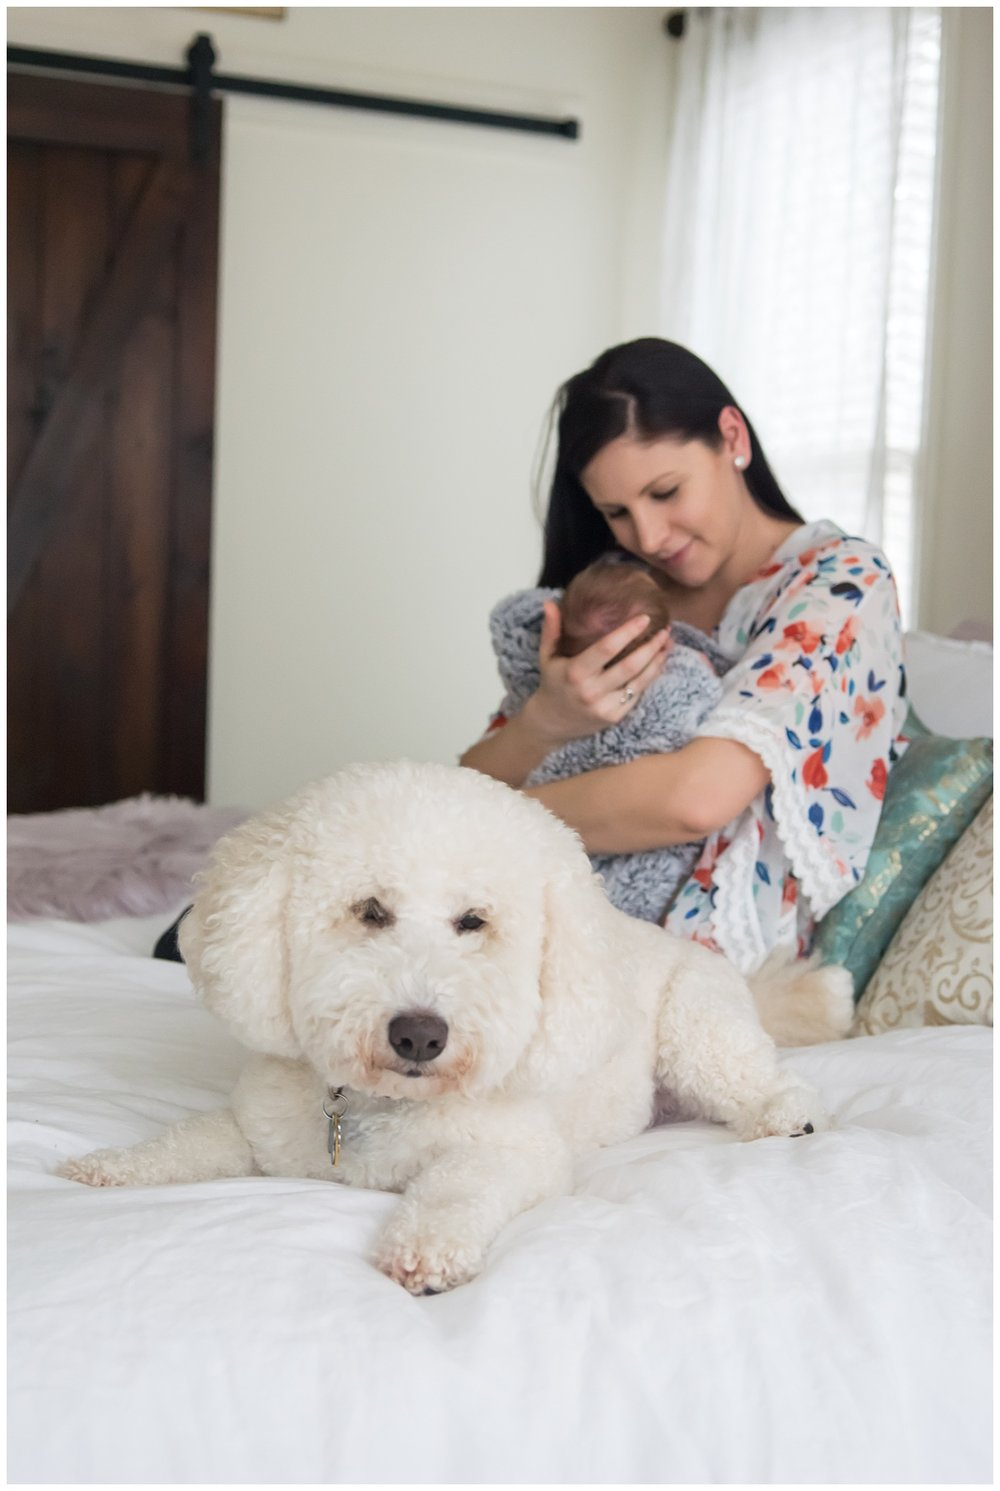 these images were taken in atlanta, georgia during an in home lifestyle newborn session. the focus is on the family dog and mom is holding the newborn baby girl in the background of the photo.